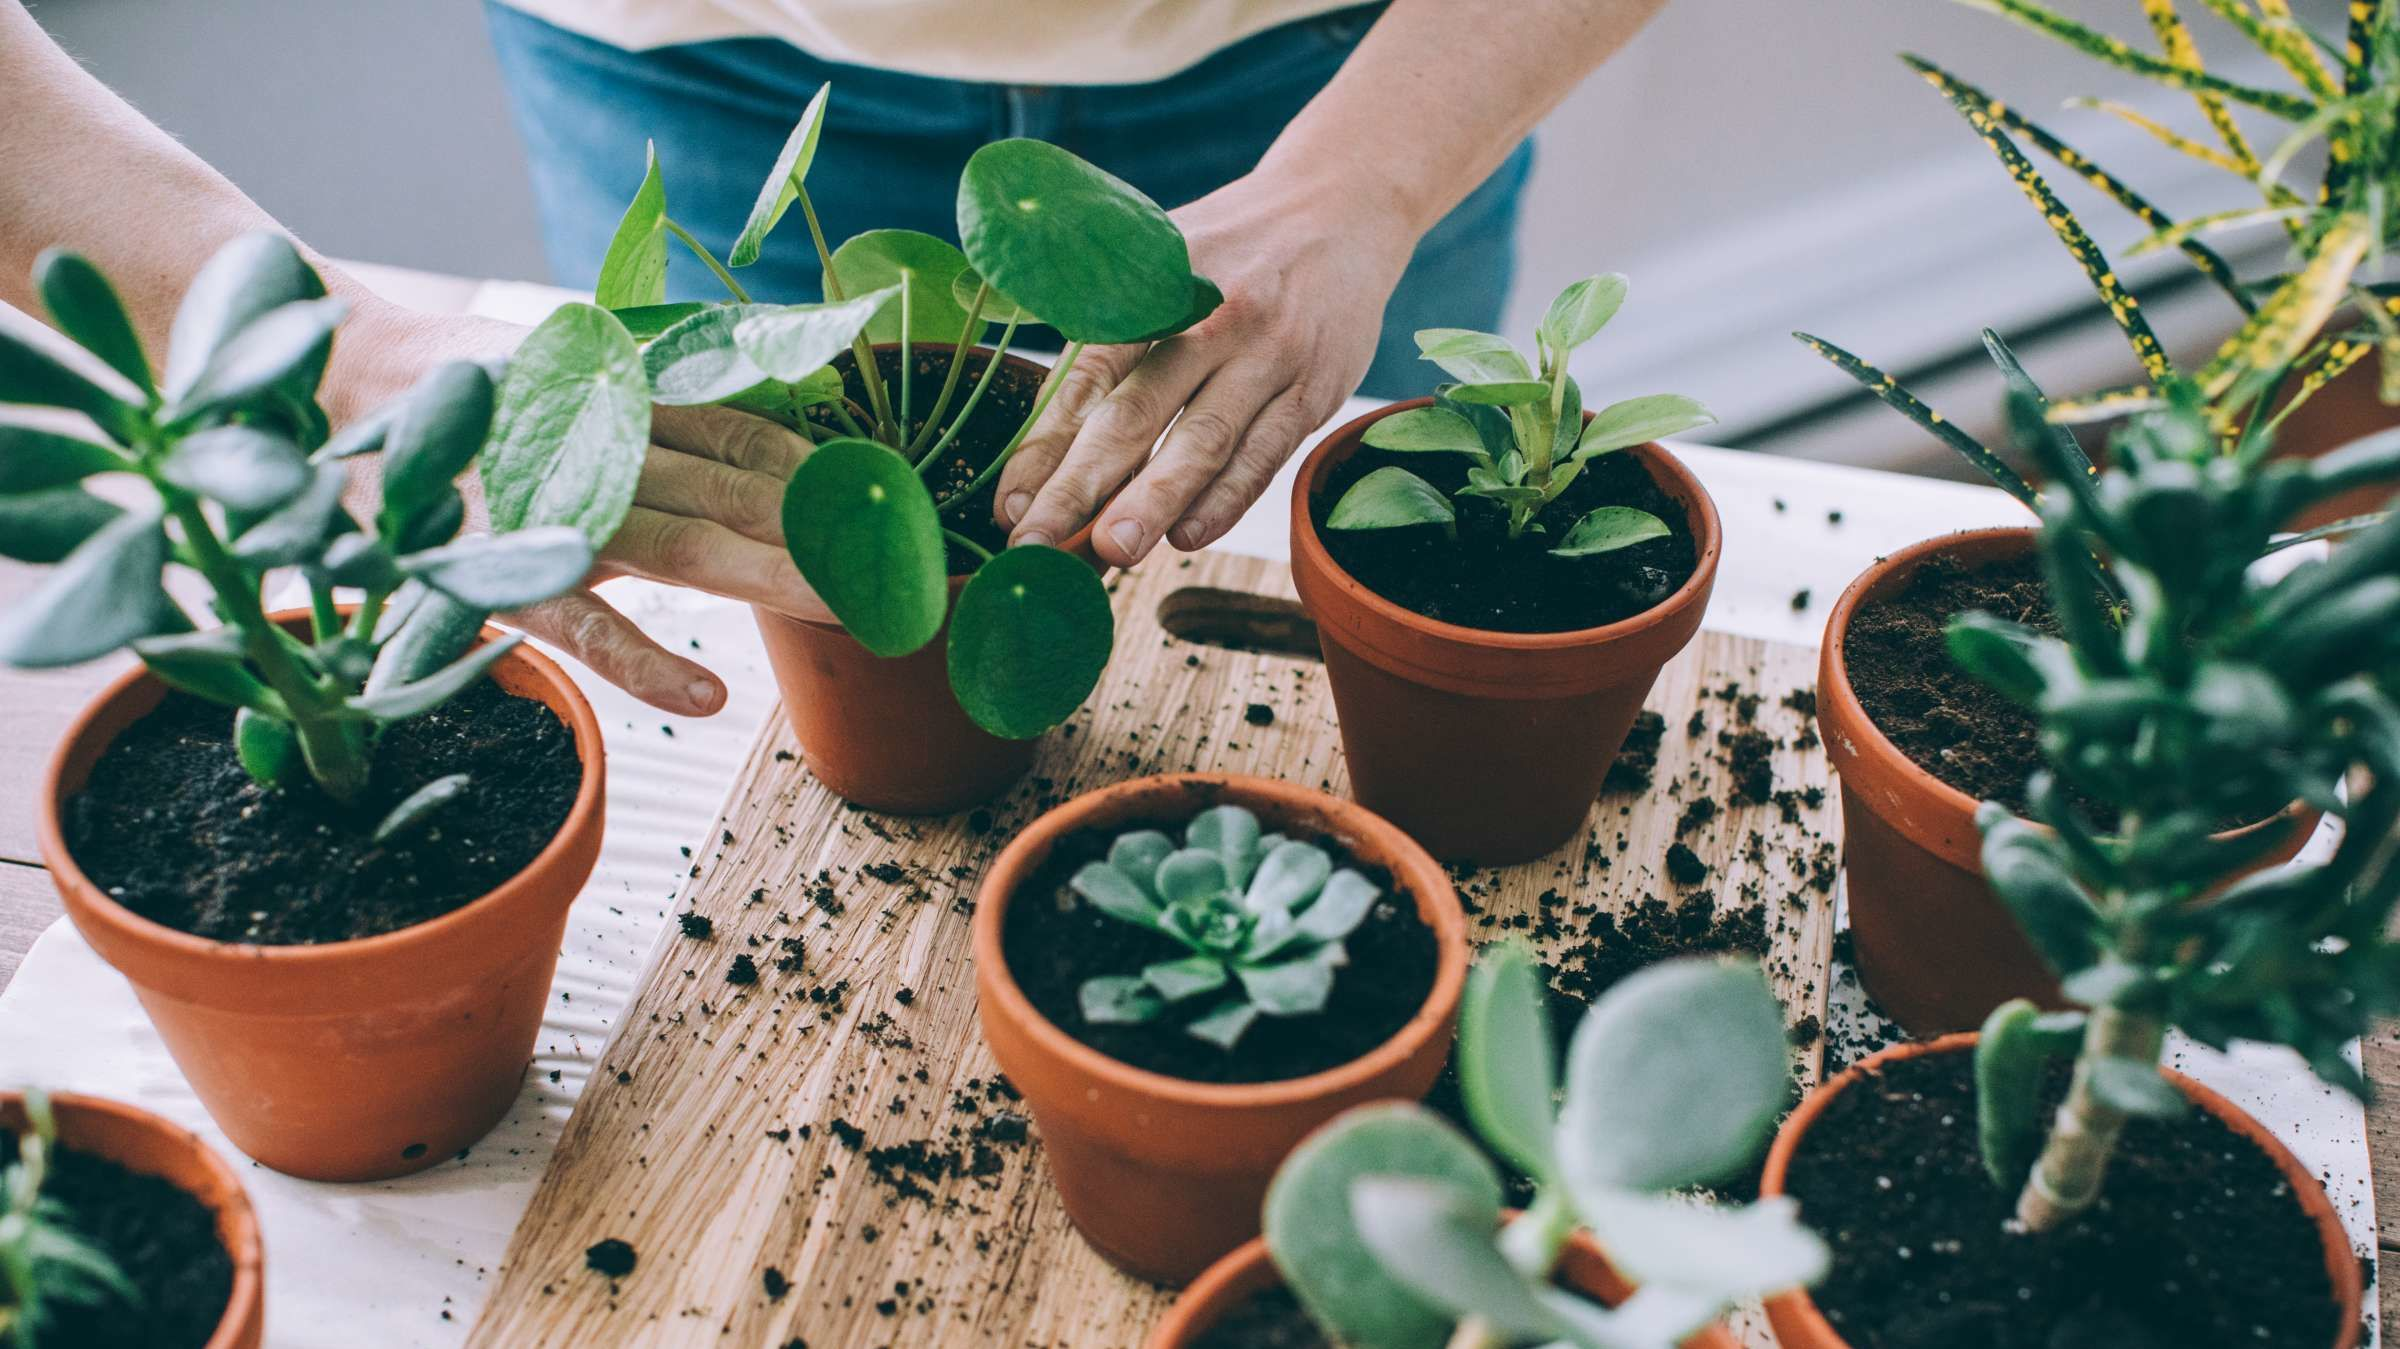 Why Lining Your Flower Pots With Coffee Filters Makes Houseplants Harder to Kill